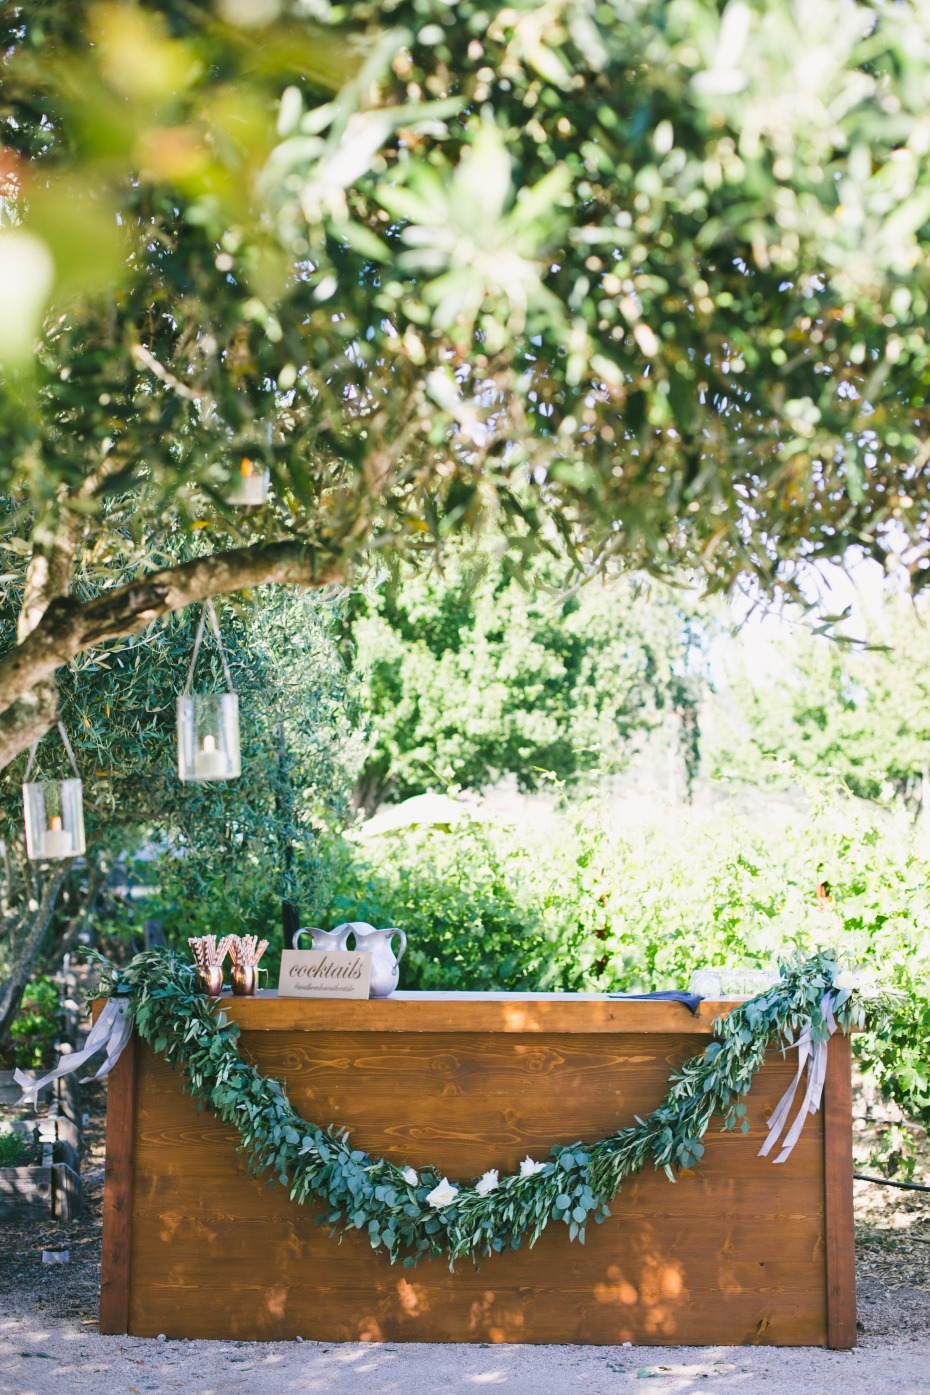 Rustic bar with garland